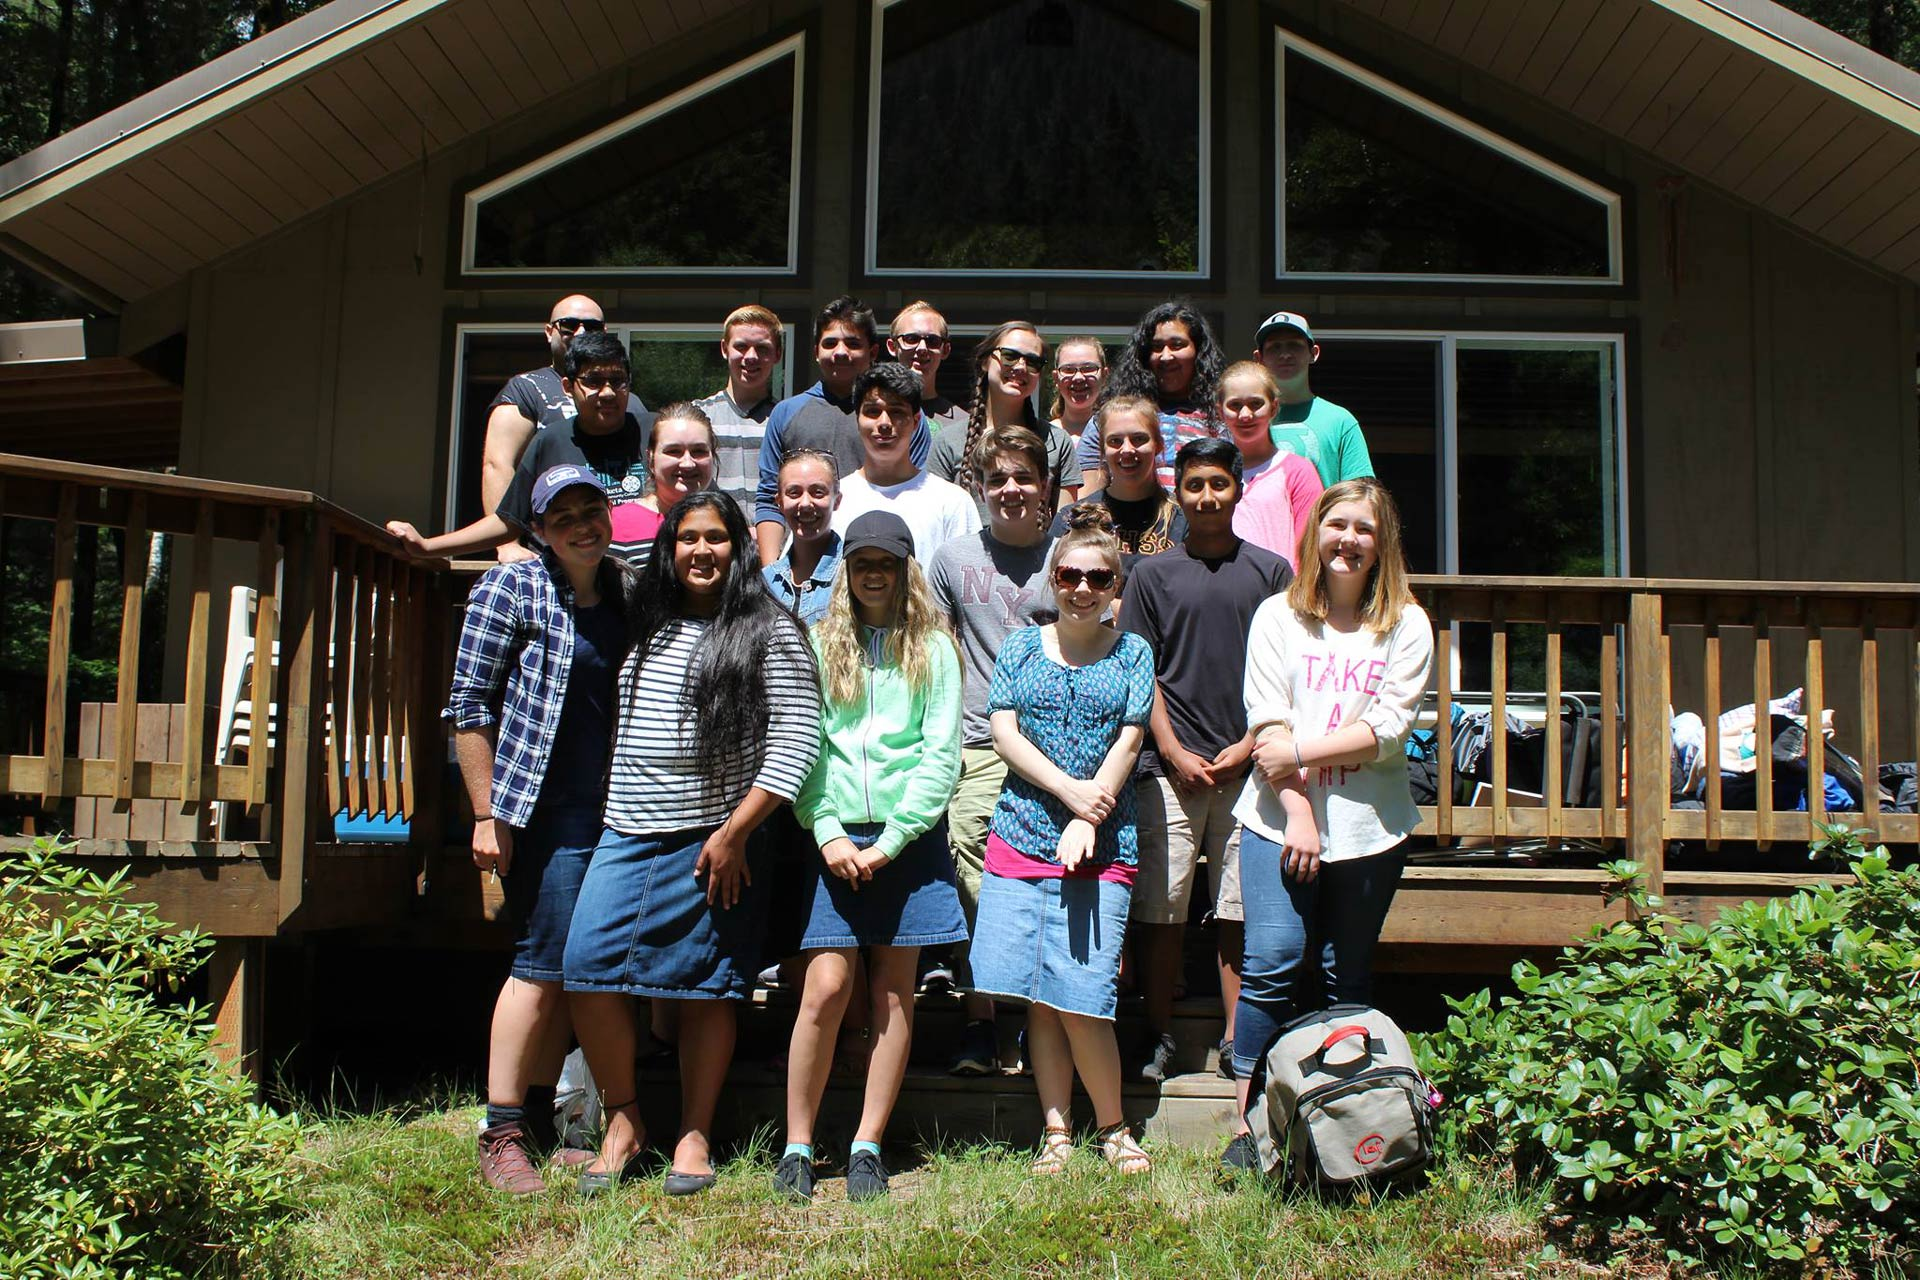 Youth and students at the annual youth camping trip for Christian World Fellowship